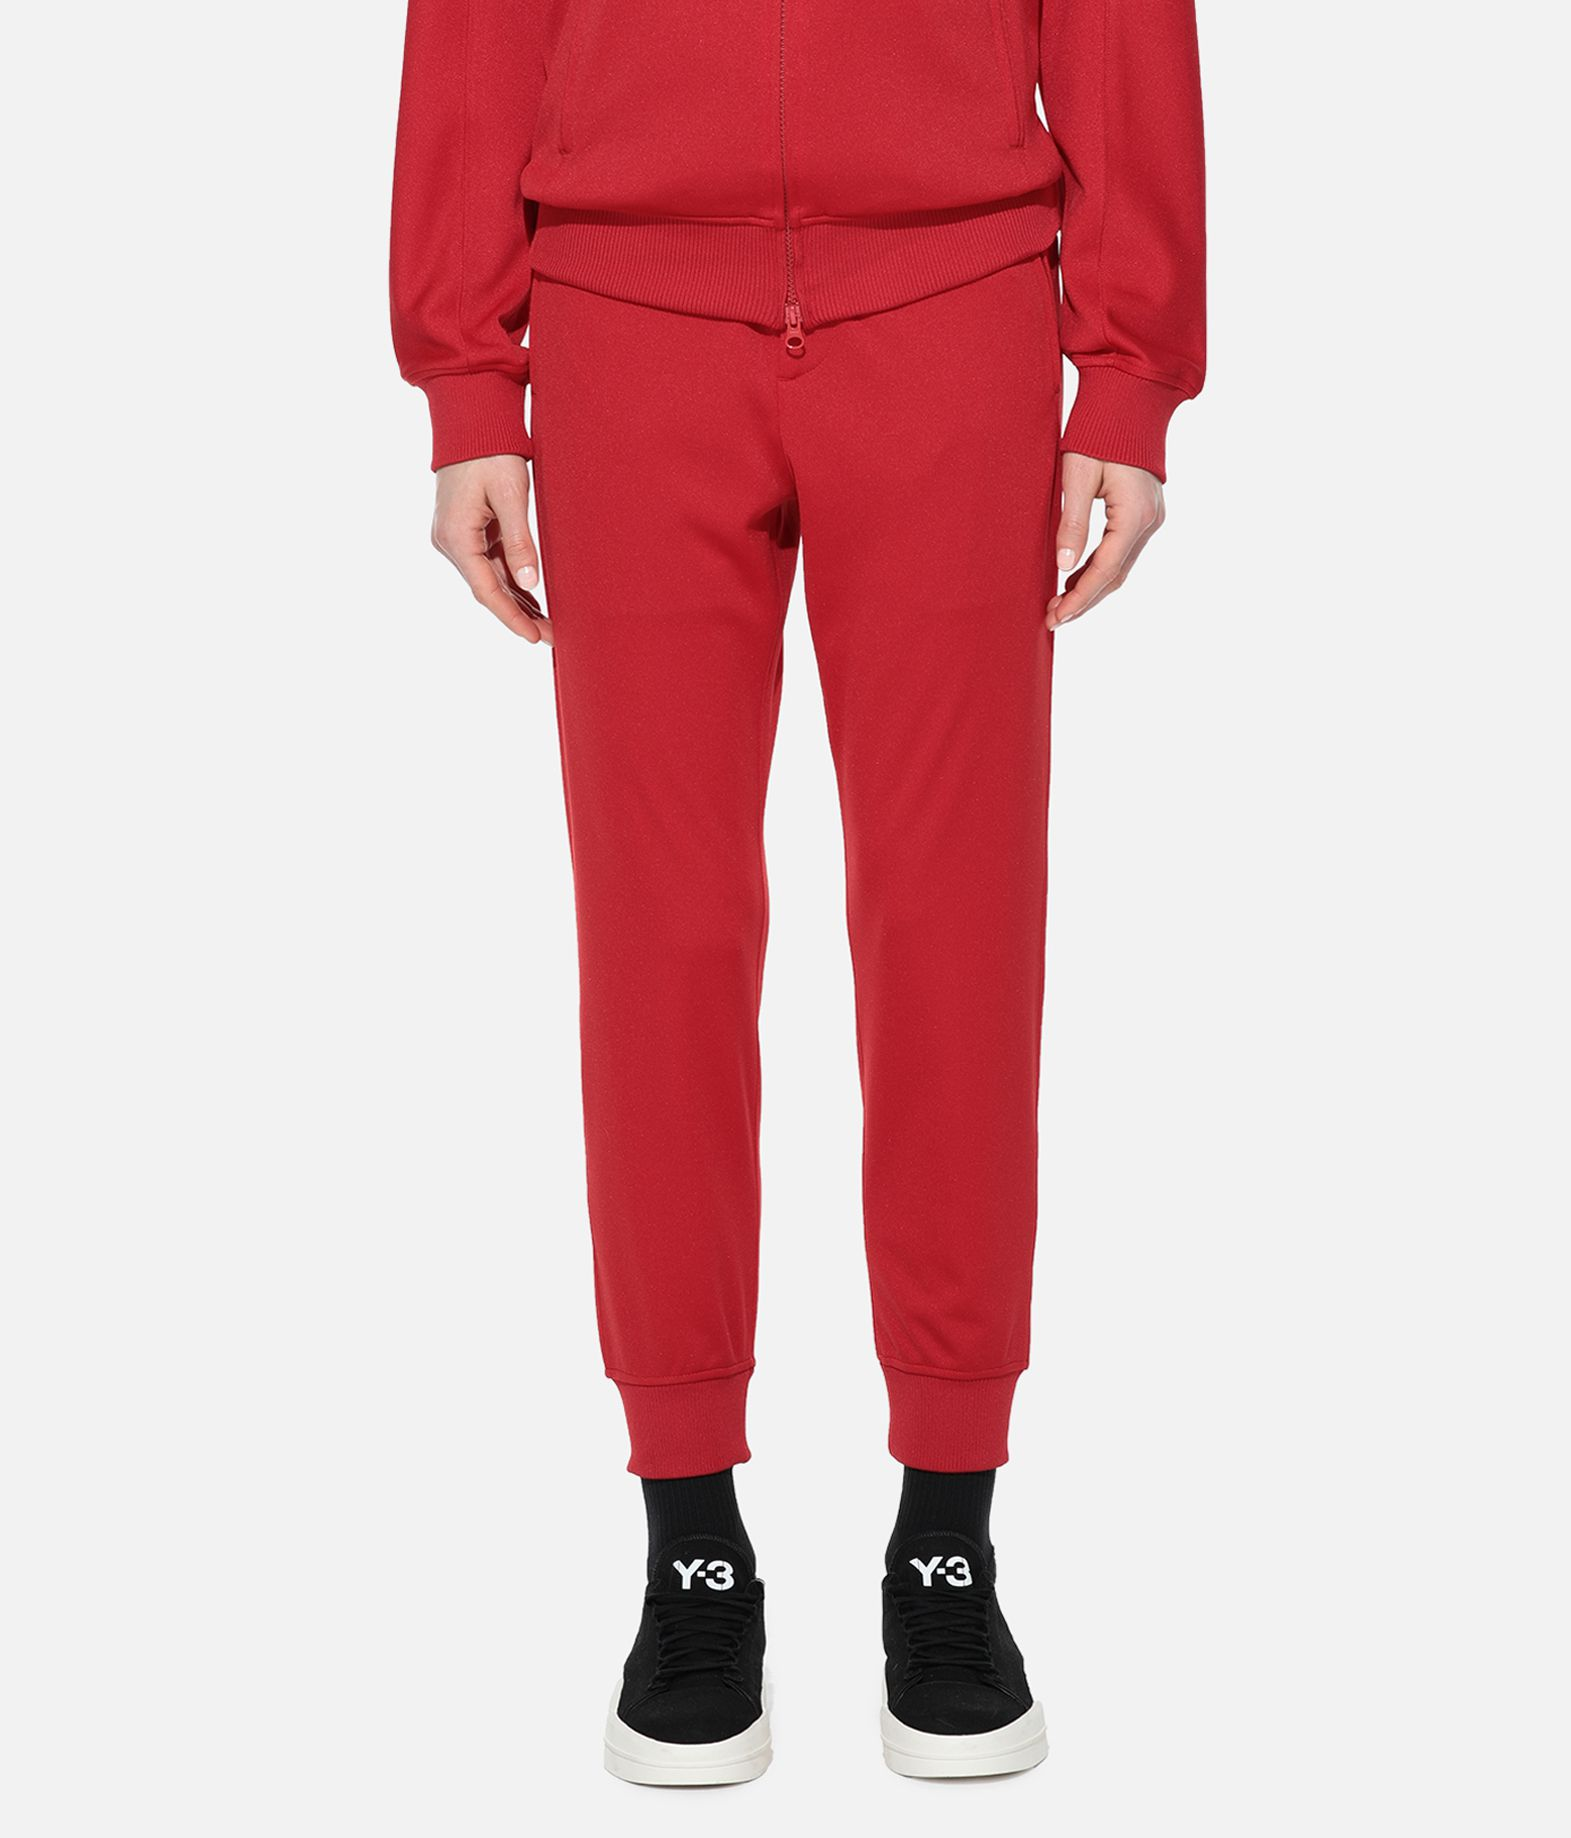 Y-3 Y-3 Classic Track Pants Casual pants Woman r